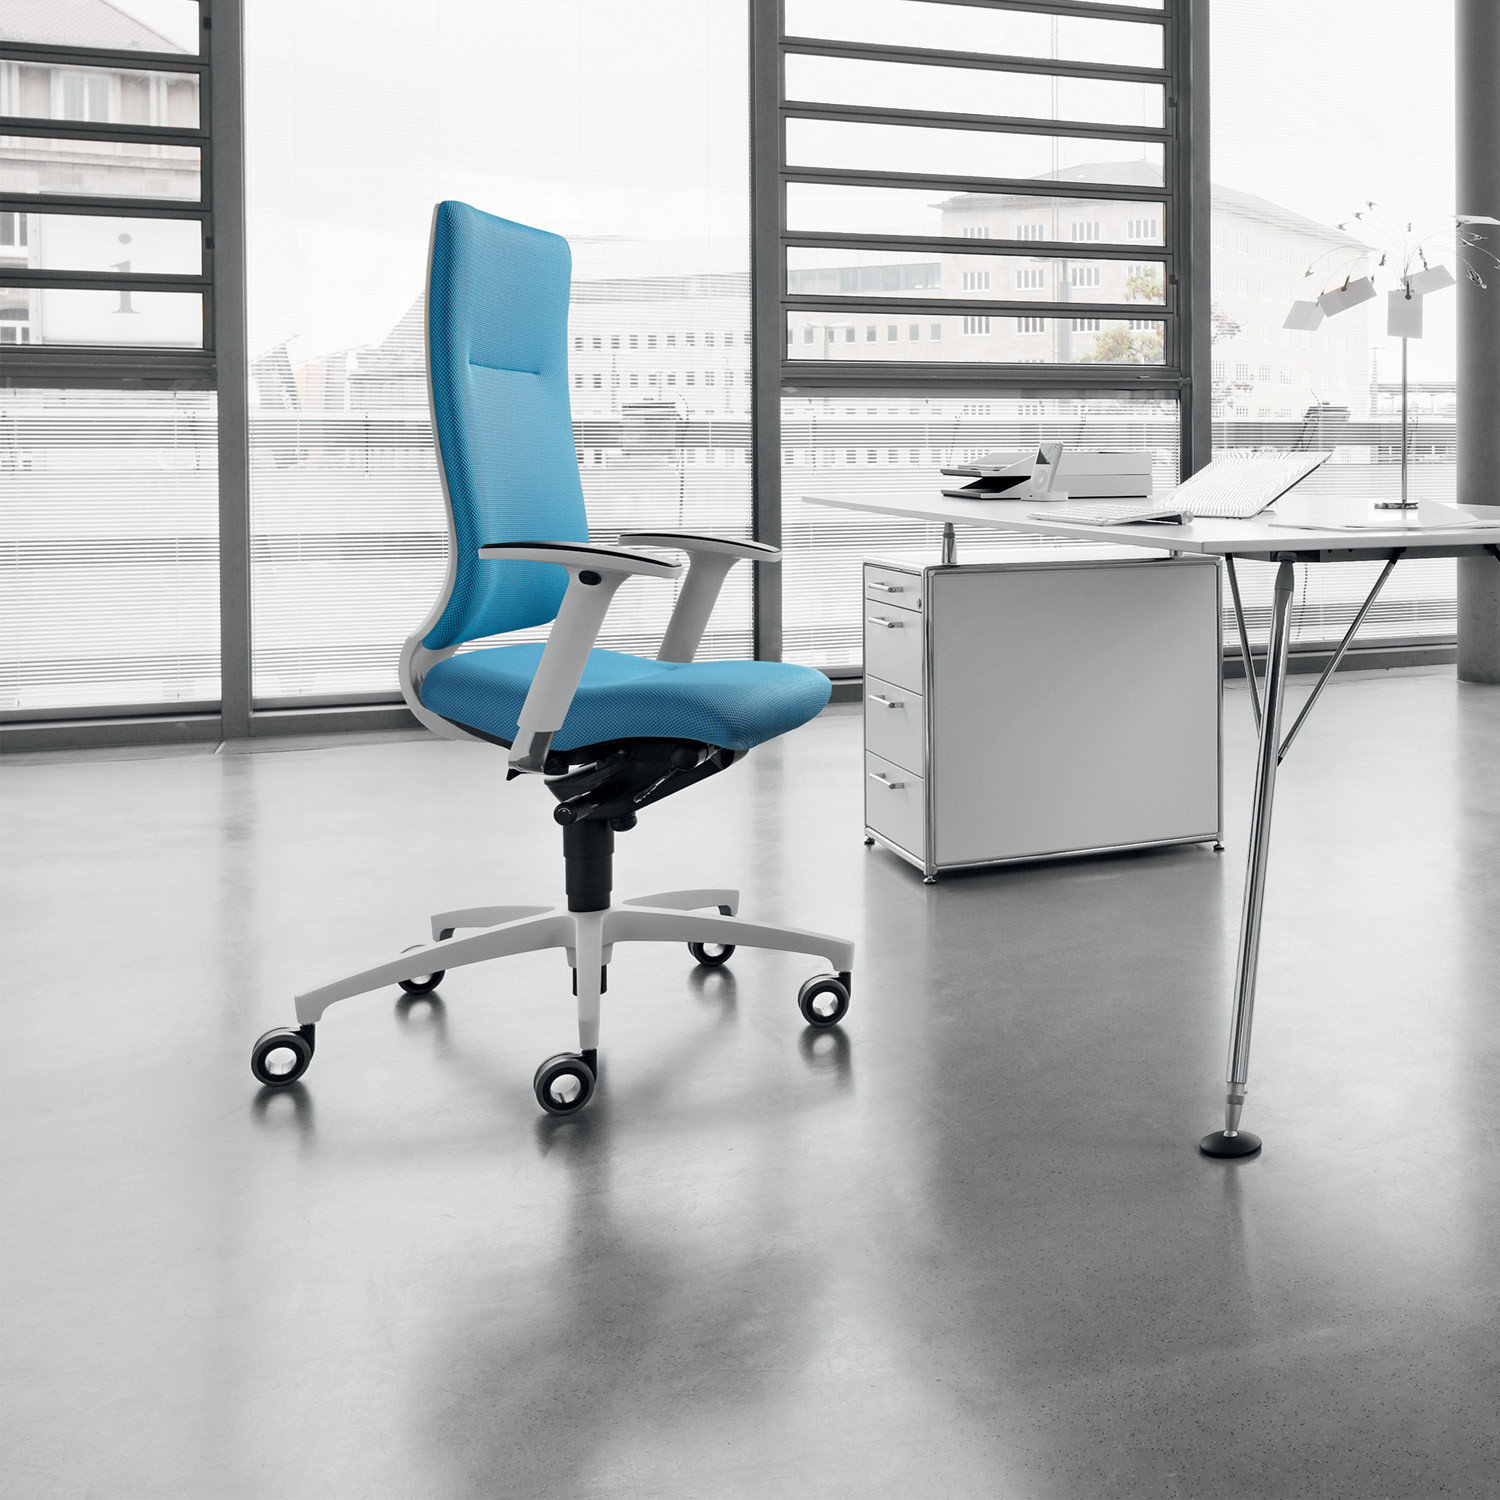 In Touch White Desk Chair from Dauphin